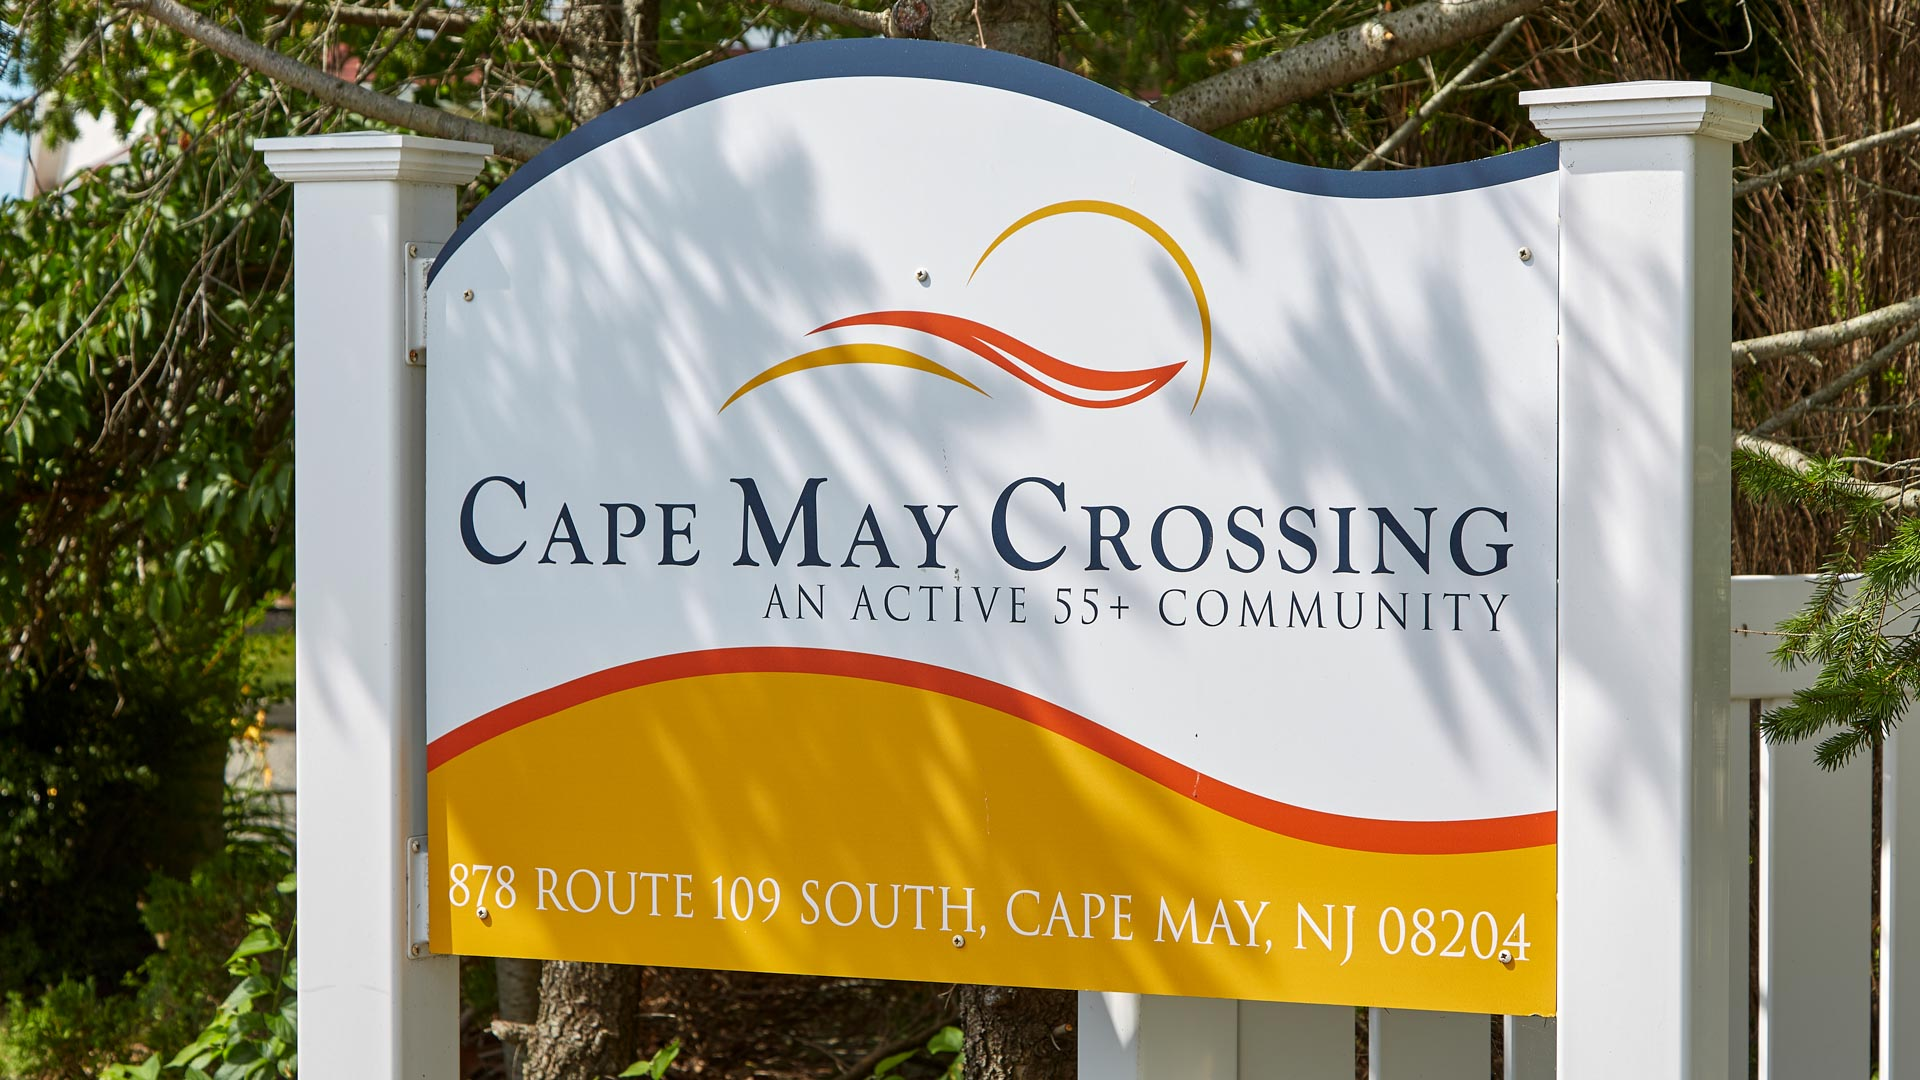 Cape May Crossing 55+ Manufactured Homes Community Entrance Sign in Cape May, NJ